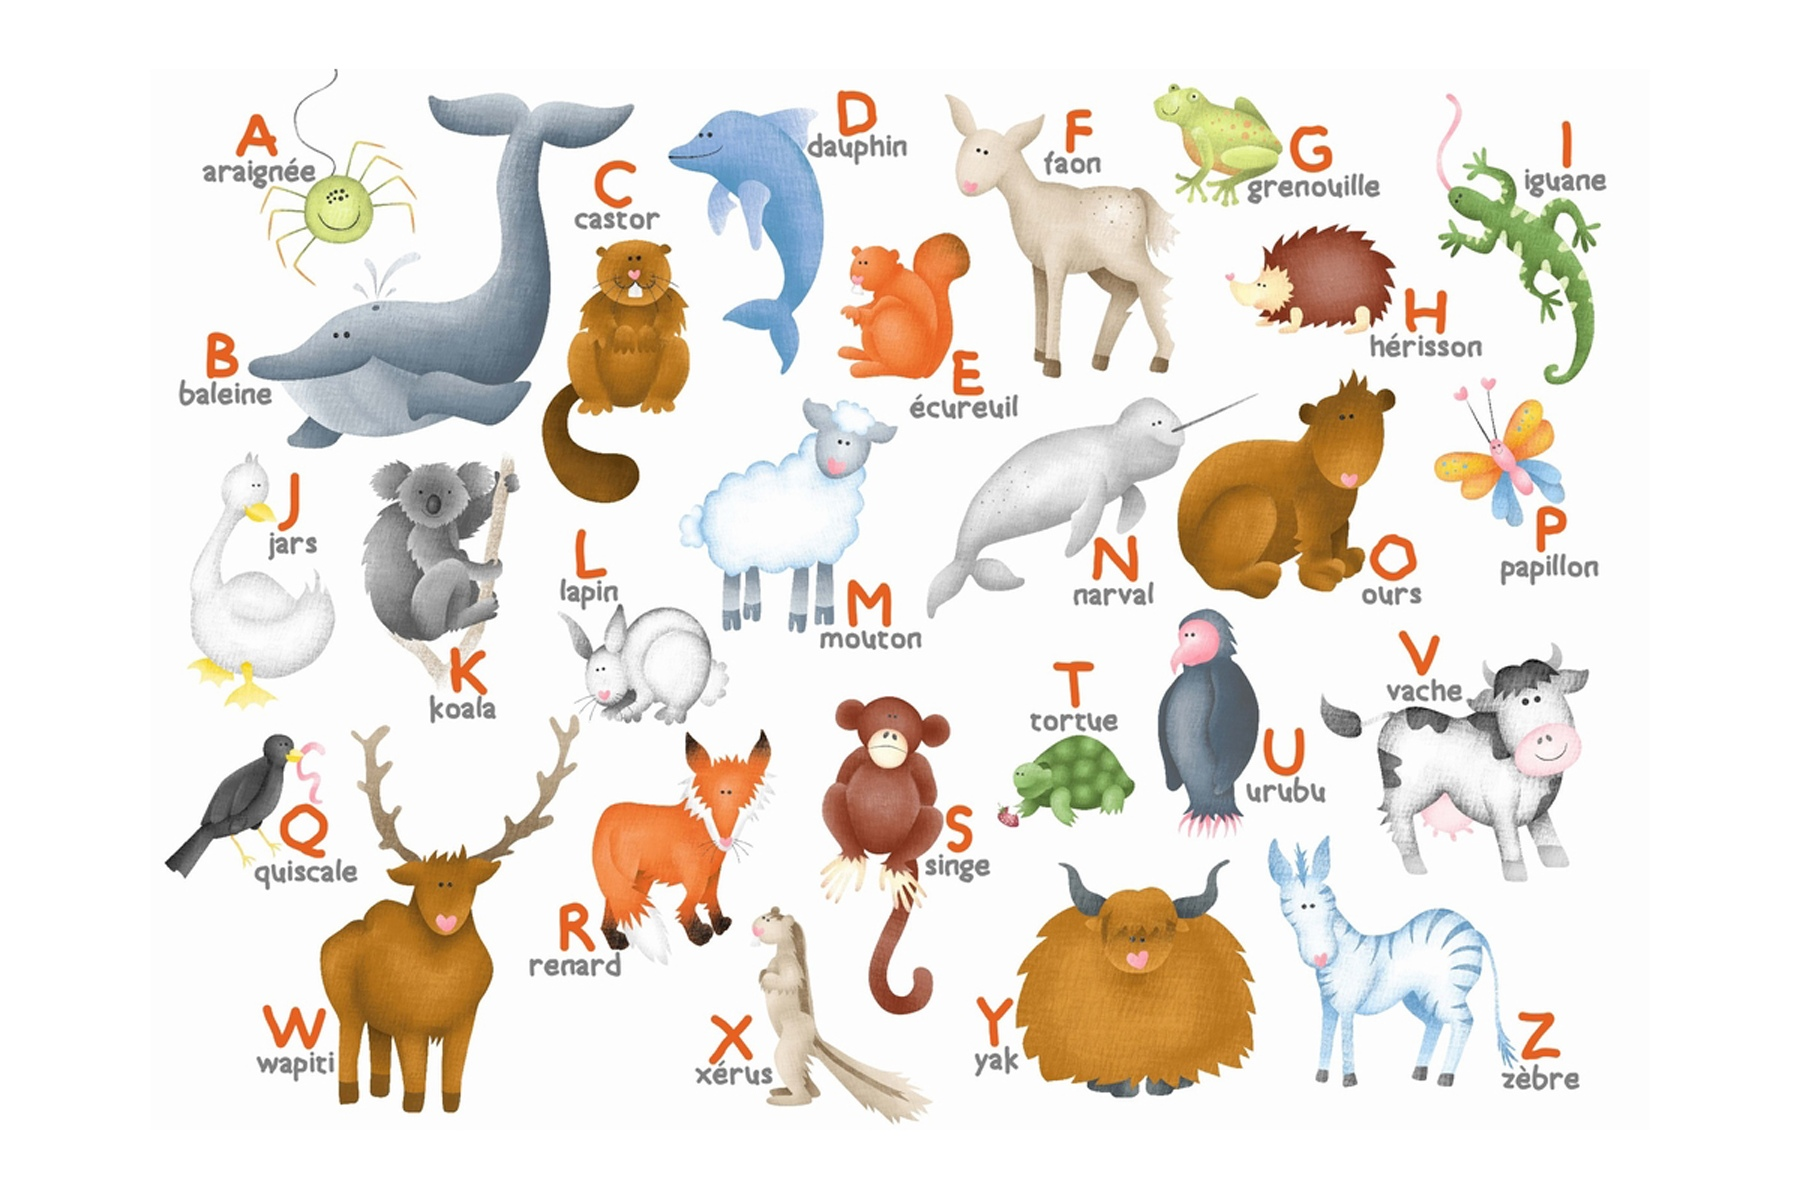 Les Animaux On Pinterest Animaux Fle And Environment